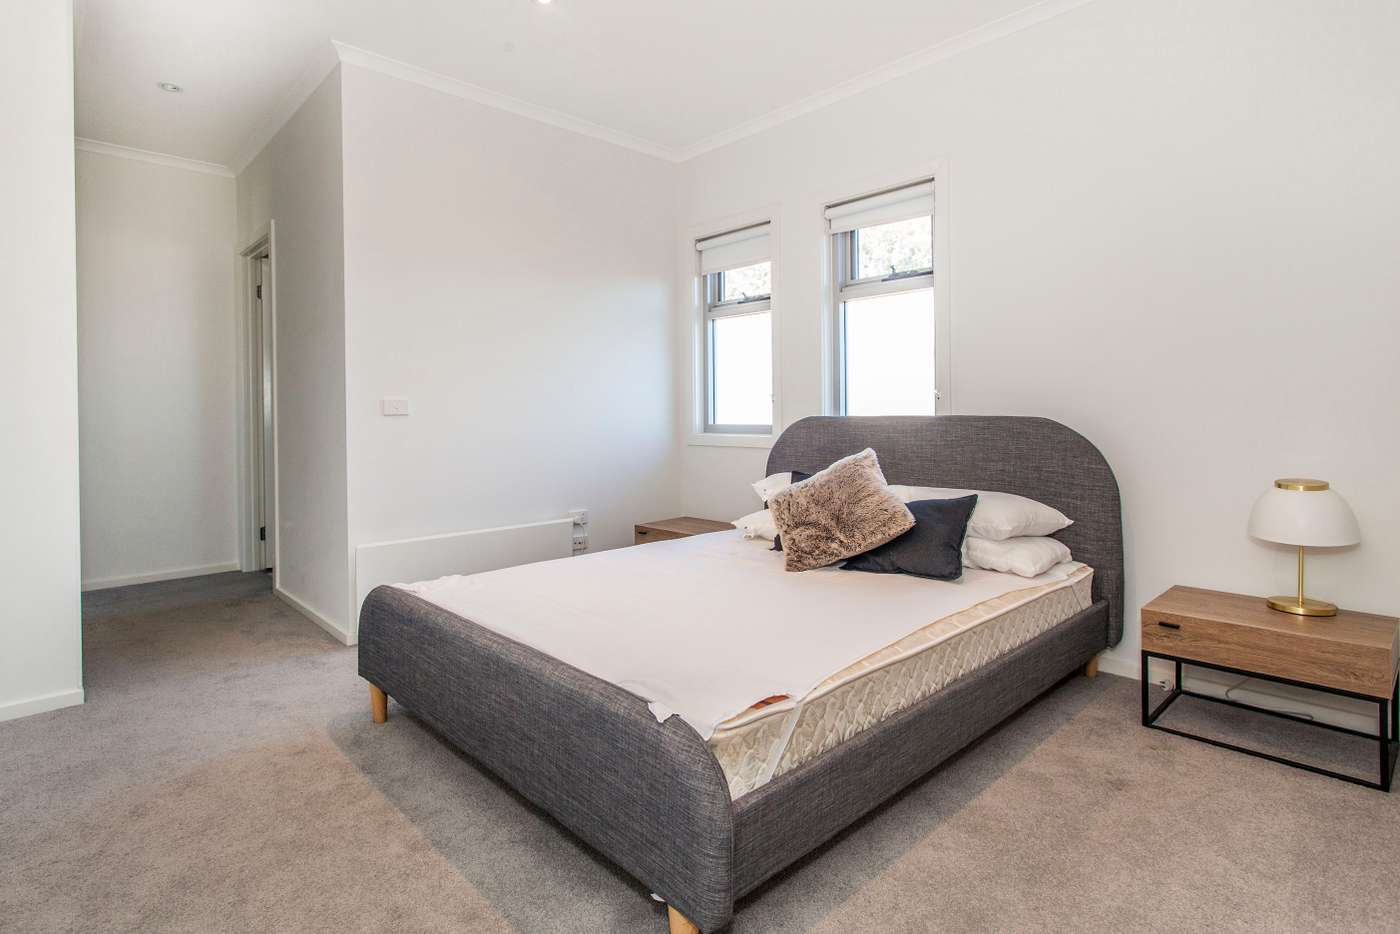 Sixth view of Homely apartment listing, 5/25 Chadstone Road, Malvern East VIC 3145